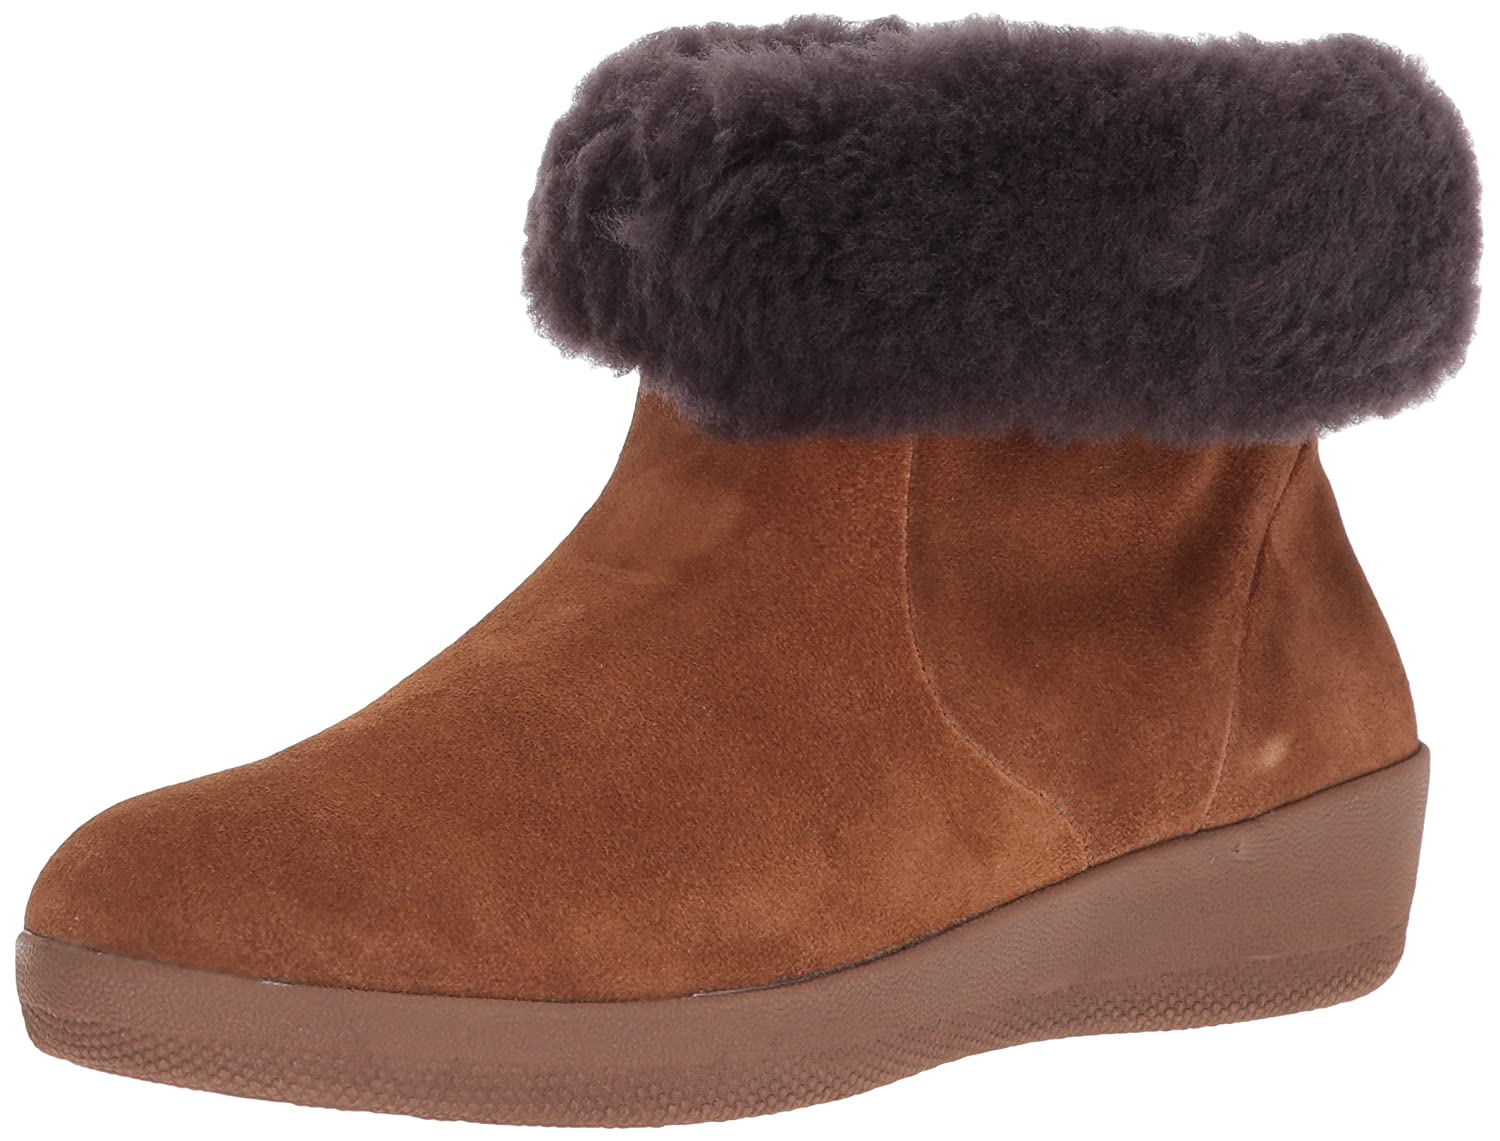 FitFlop Women's Skatebootie Suede Shearling Ankle Boot B06XG579CD 10 B(M) US|Chestnut